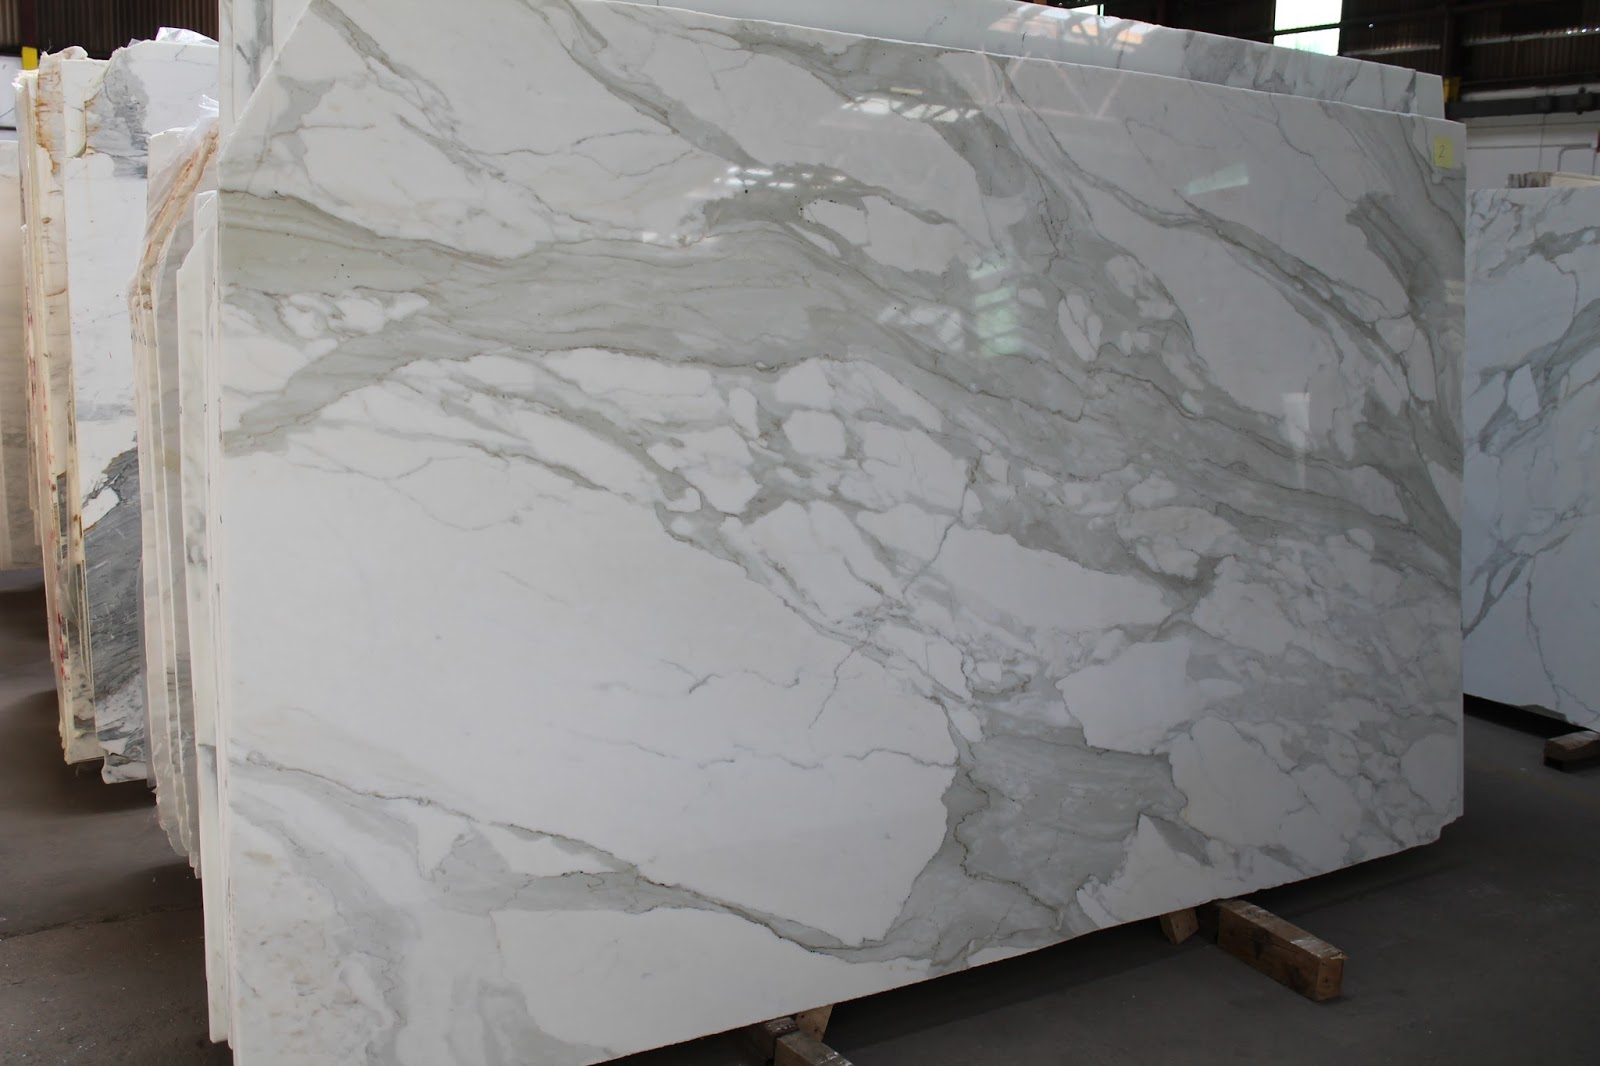 white marble kitchen countertop slabs marble kitchen countertops 2 Calacatta Gold Polished Marble Slabs in New York